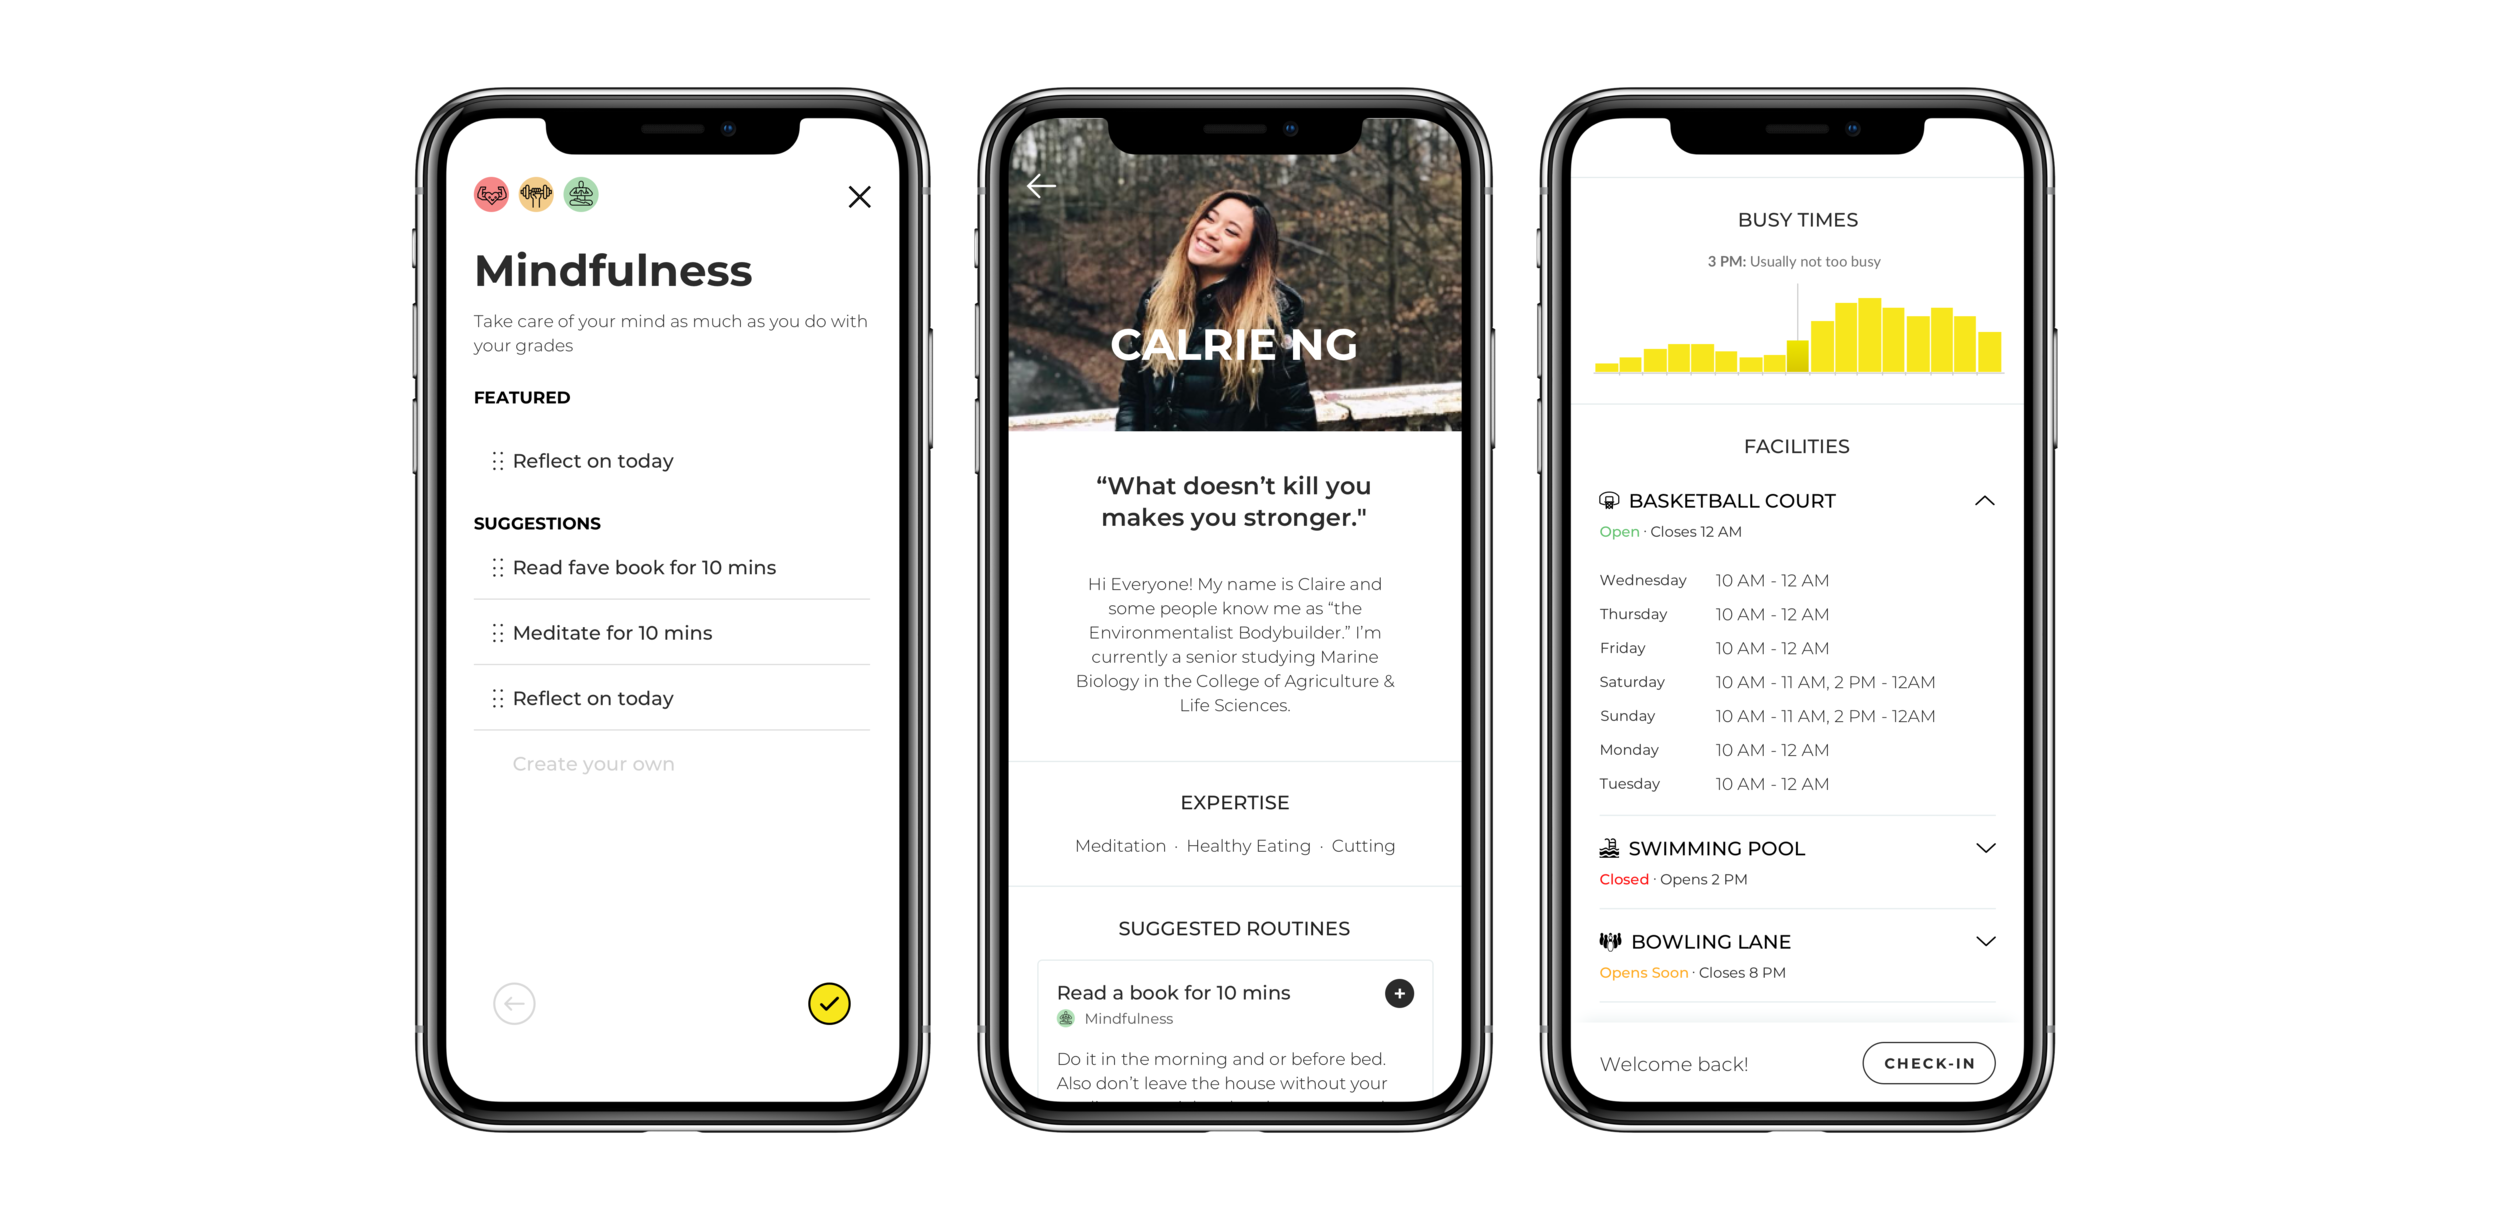 CU AppdevSPRING 2019 - designed 3 features for Uplift, a fitness & well-being app, that helps students form habits, learn from pros, and stay up to date with gym facility availability